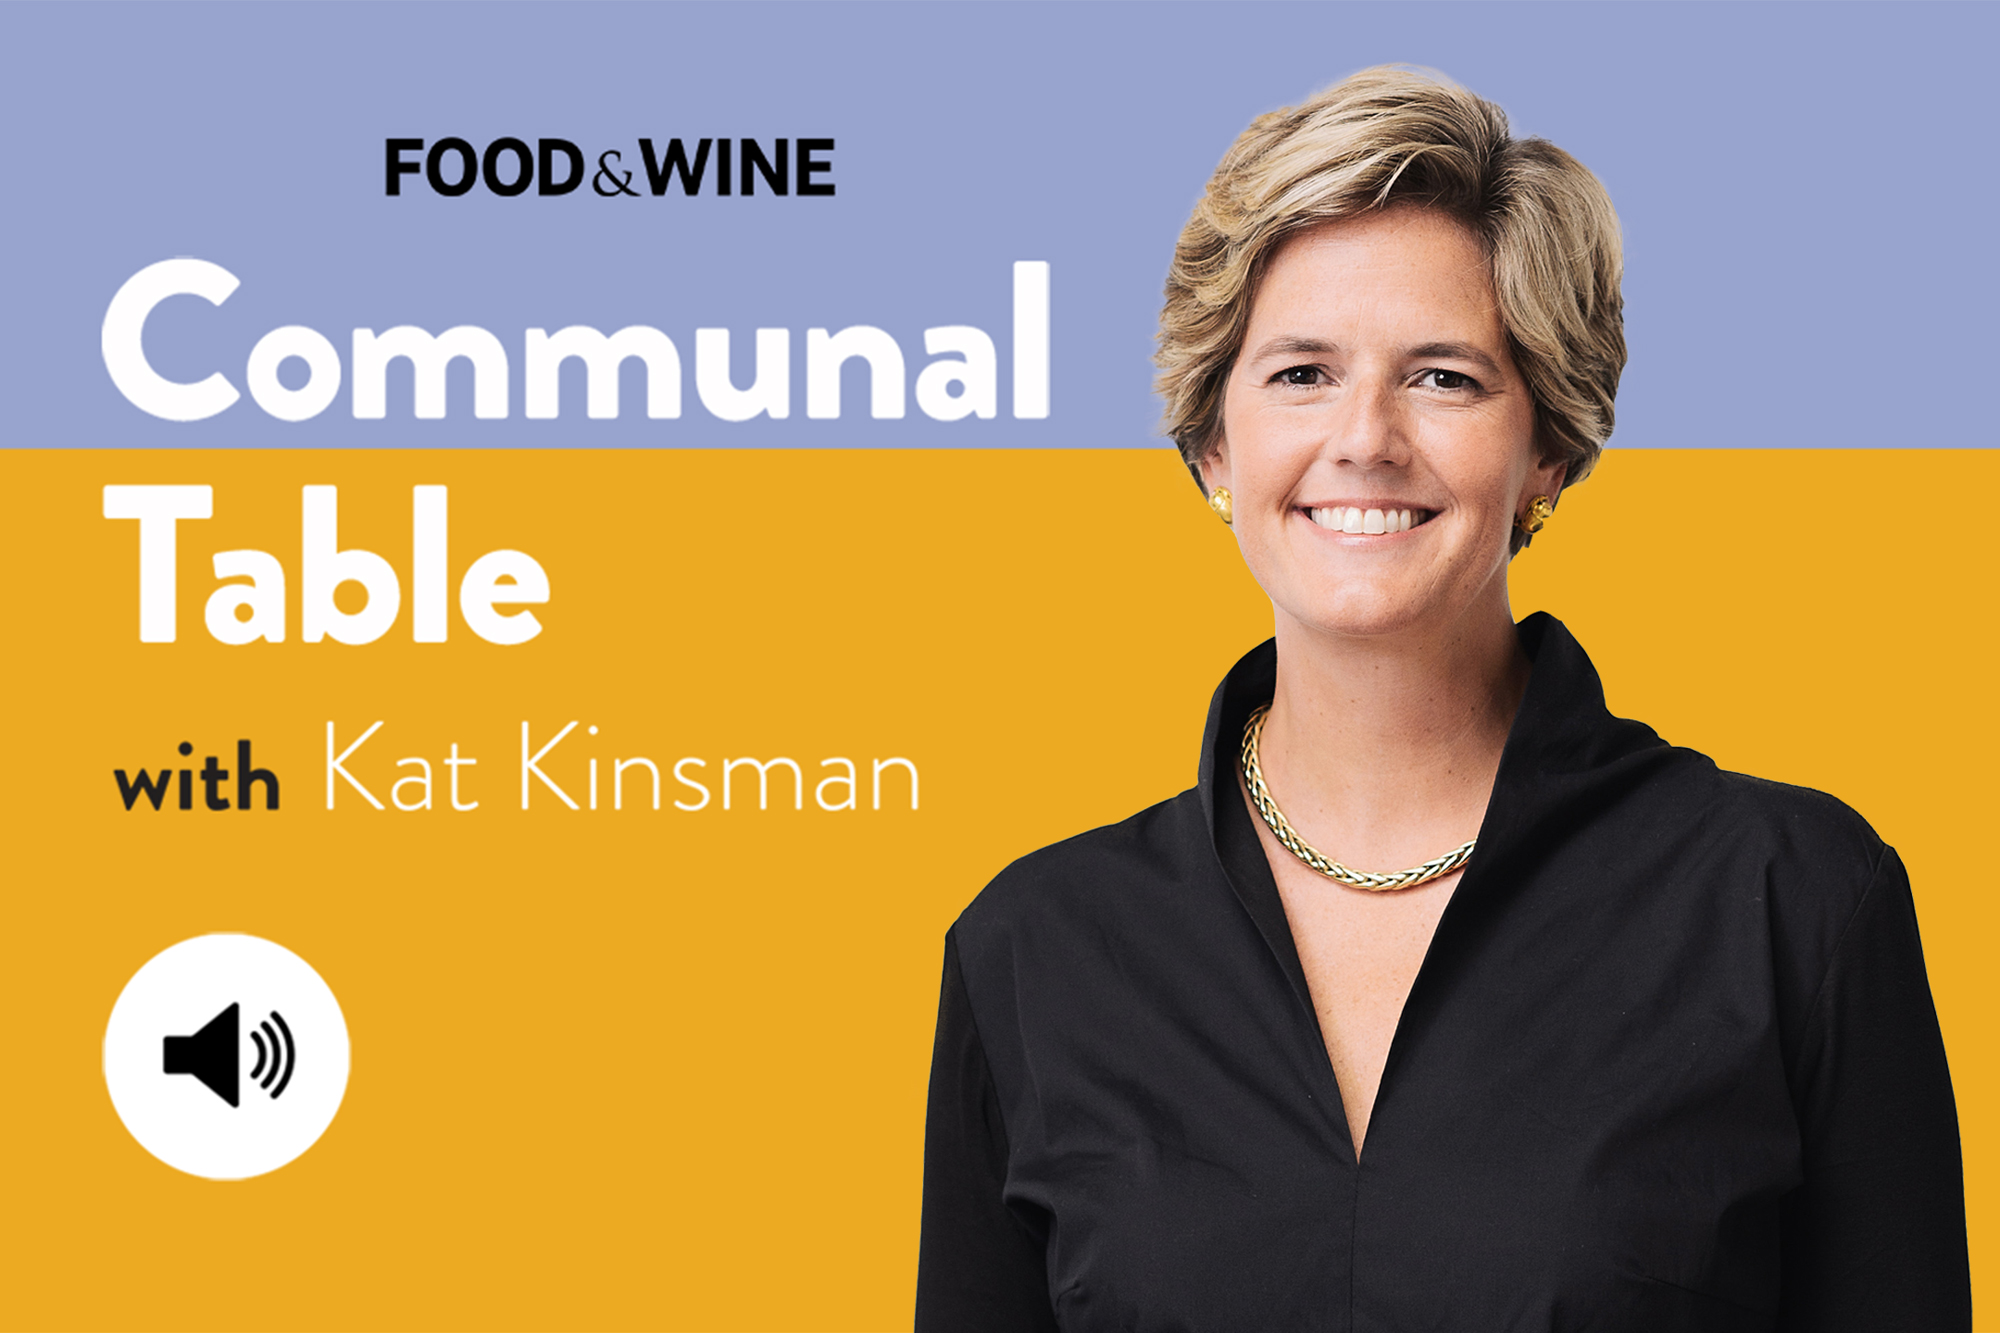 Communal Table with Kat Kinsman featuring Sarah Robbins